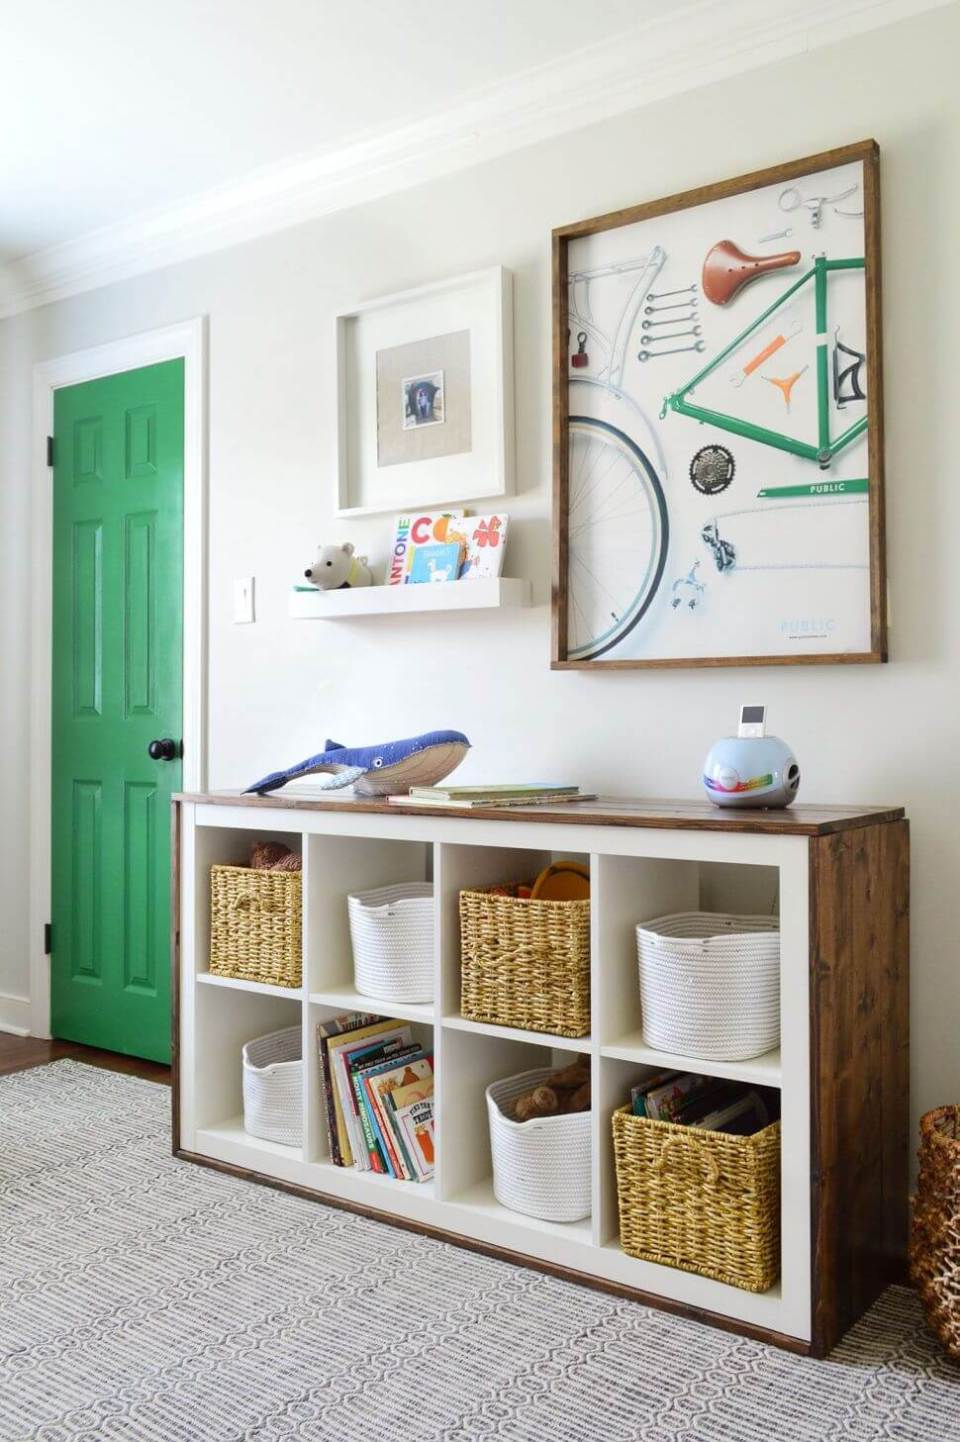 Use cubbies - Clever DIY Toy Storage & Organization Ideas & Projects For Kids